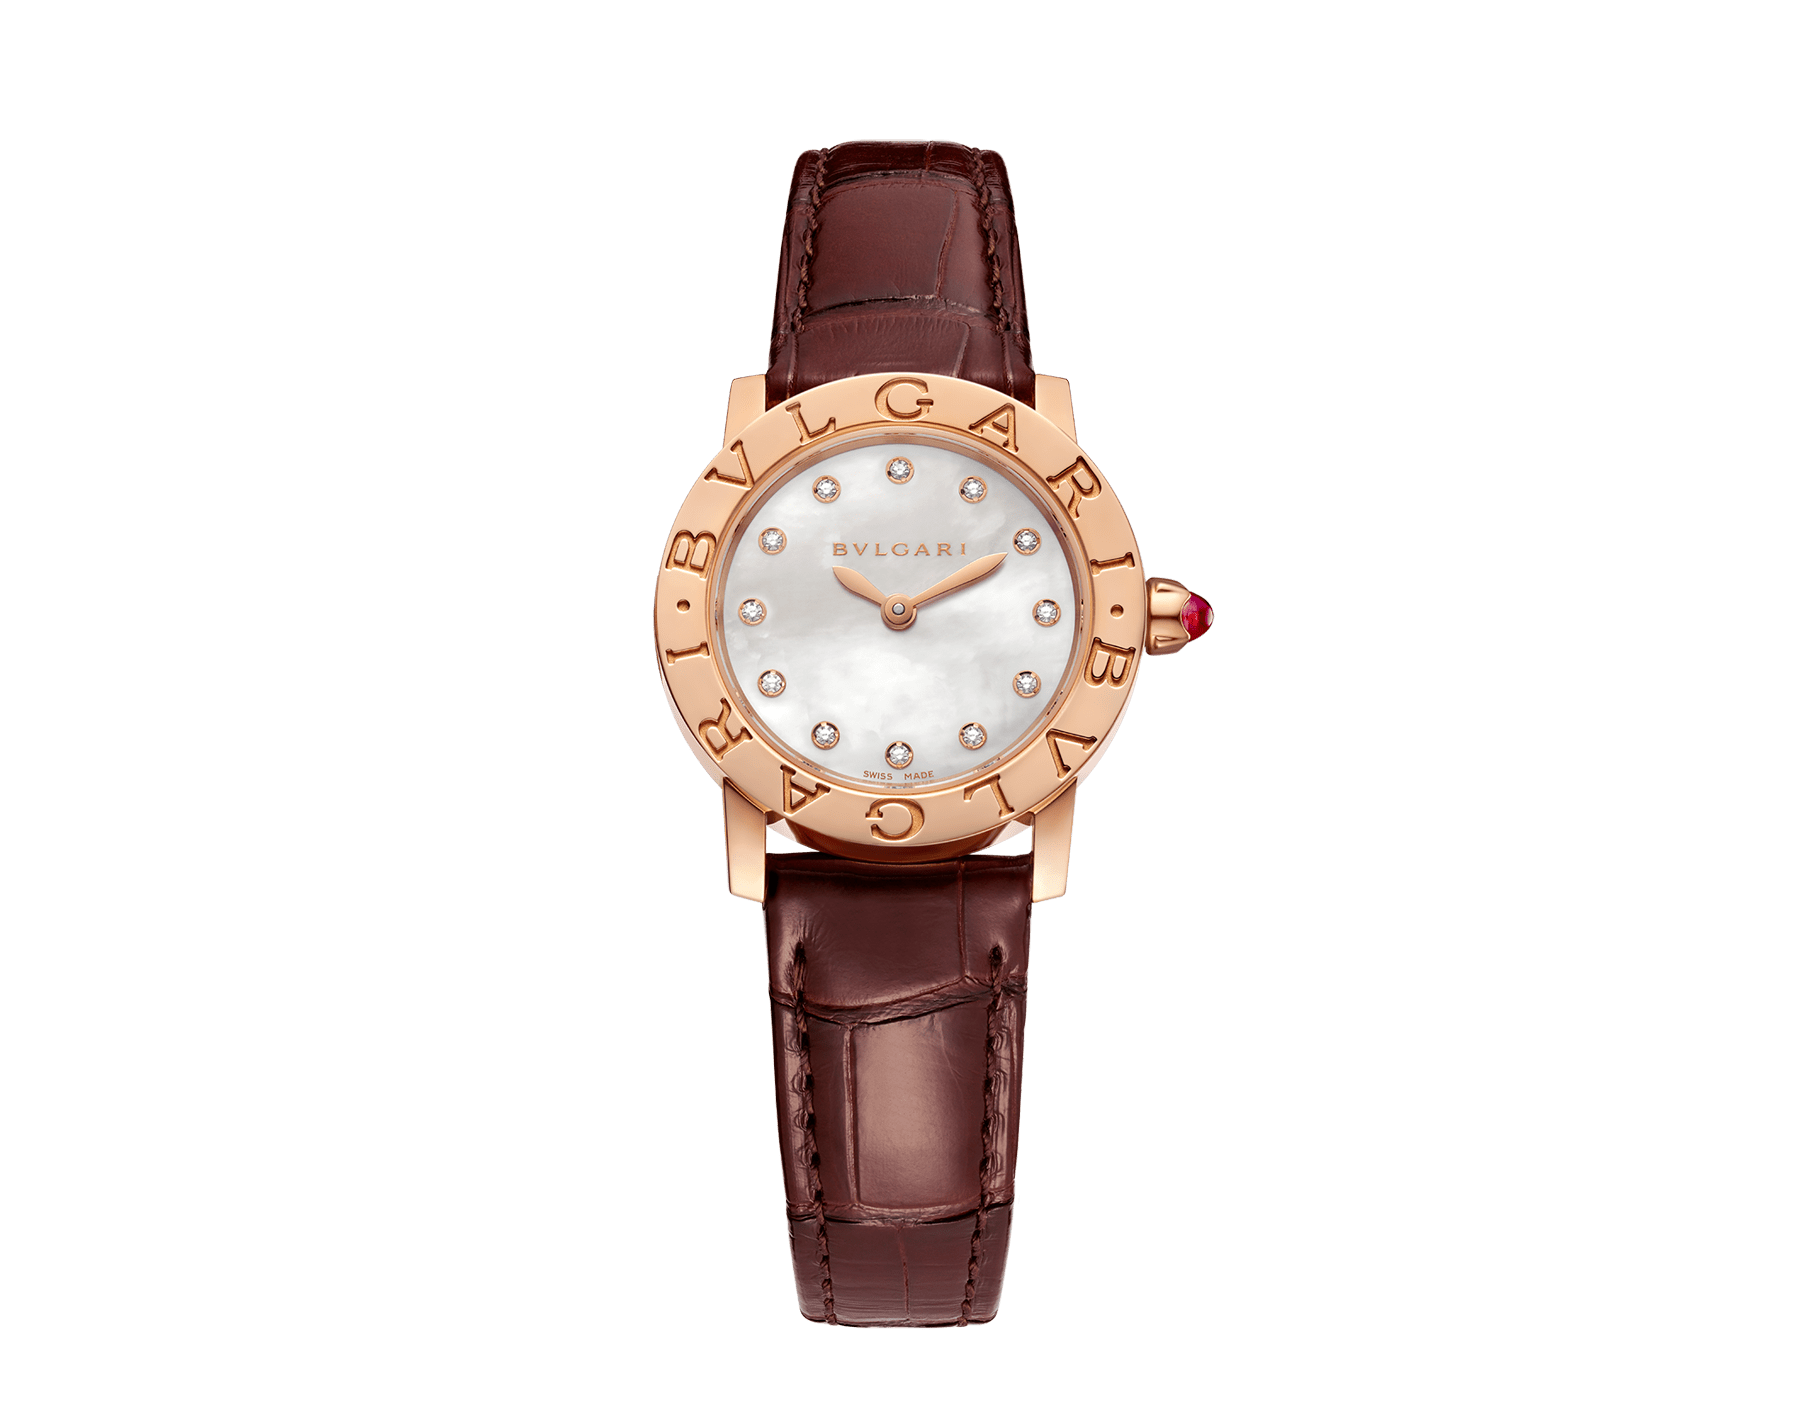 BVLGARI BVLGARI watch with 18 kt rose gold case, white mother-of-pearl dial, diamond indexes and shiny brown alligator bracelet 102751 image 1